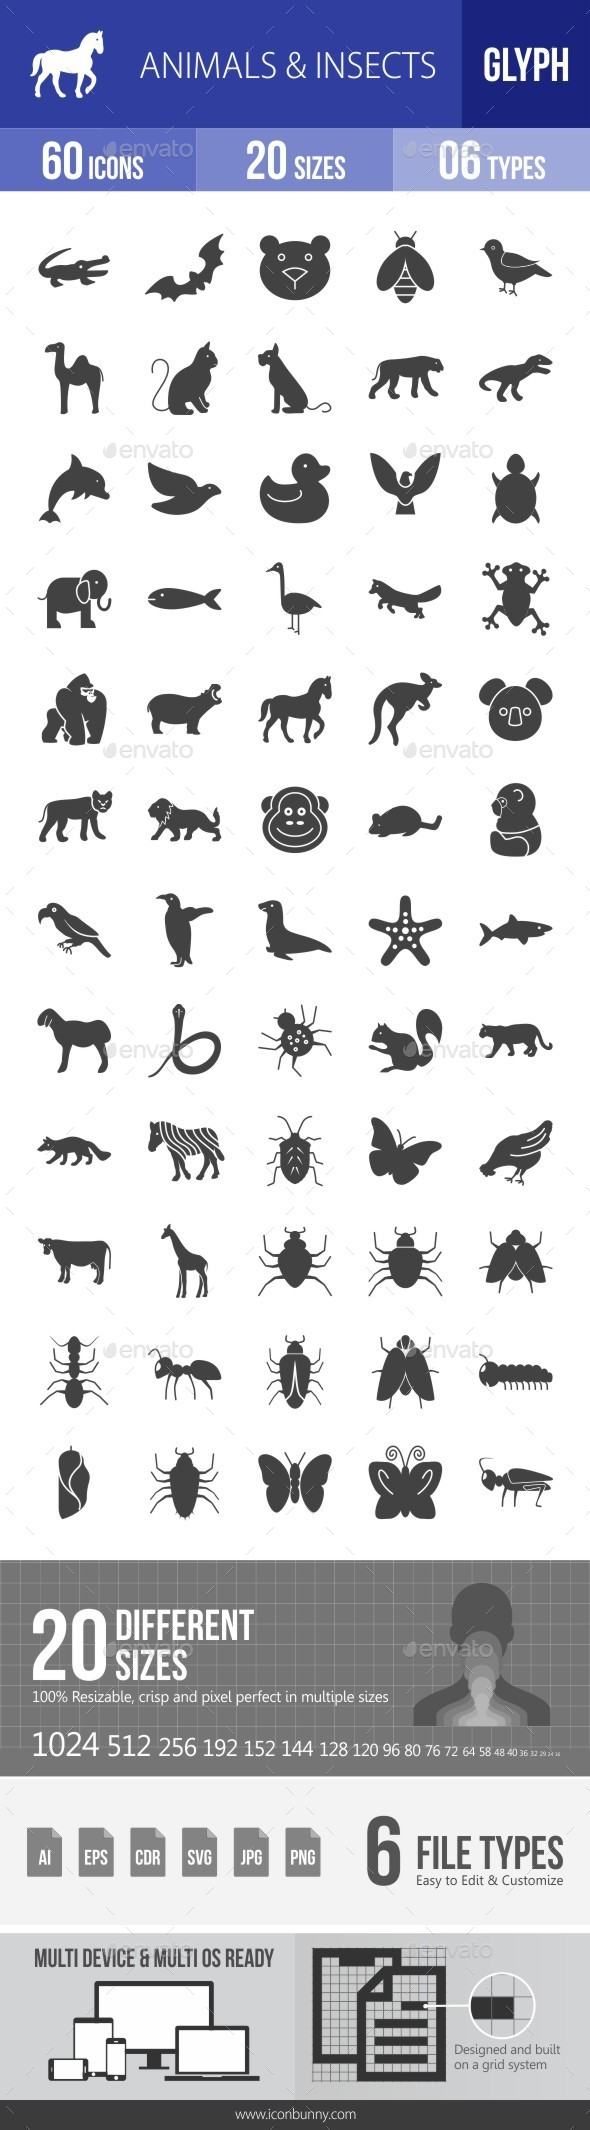 Animals & Insects Glyph Icons - Icons